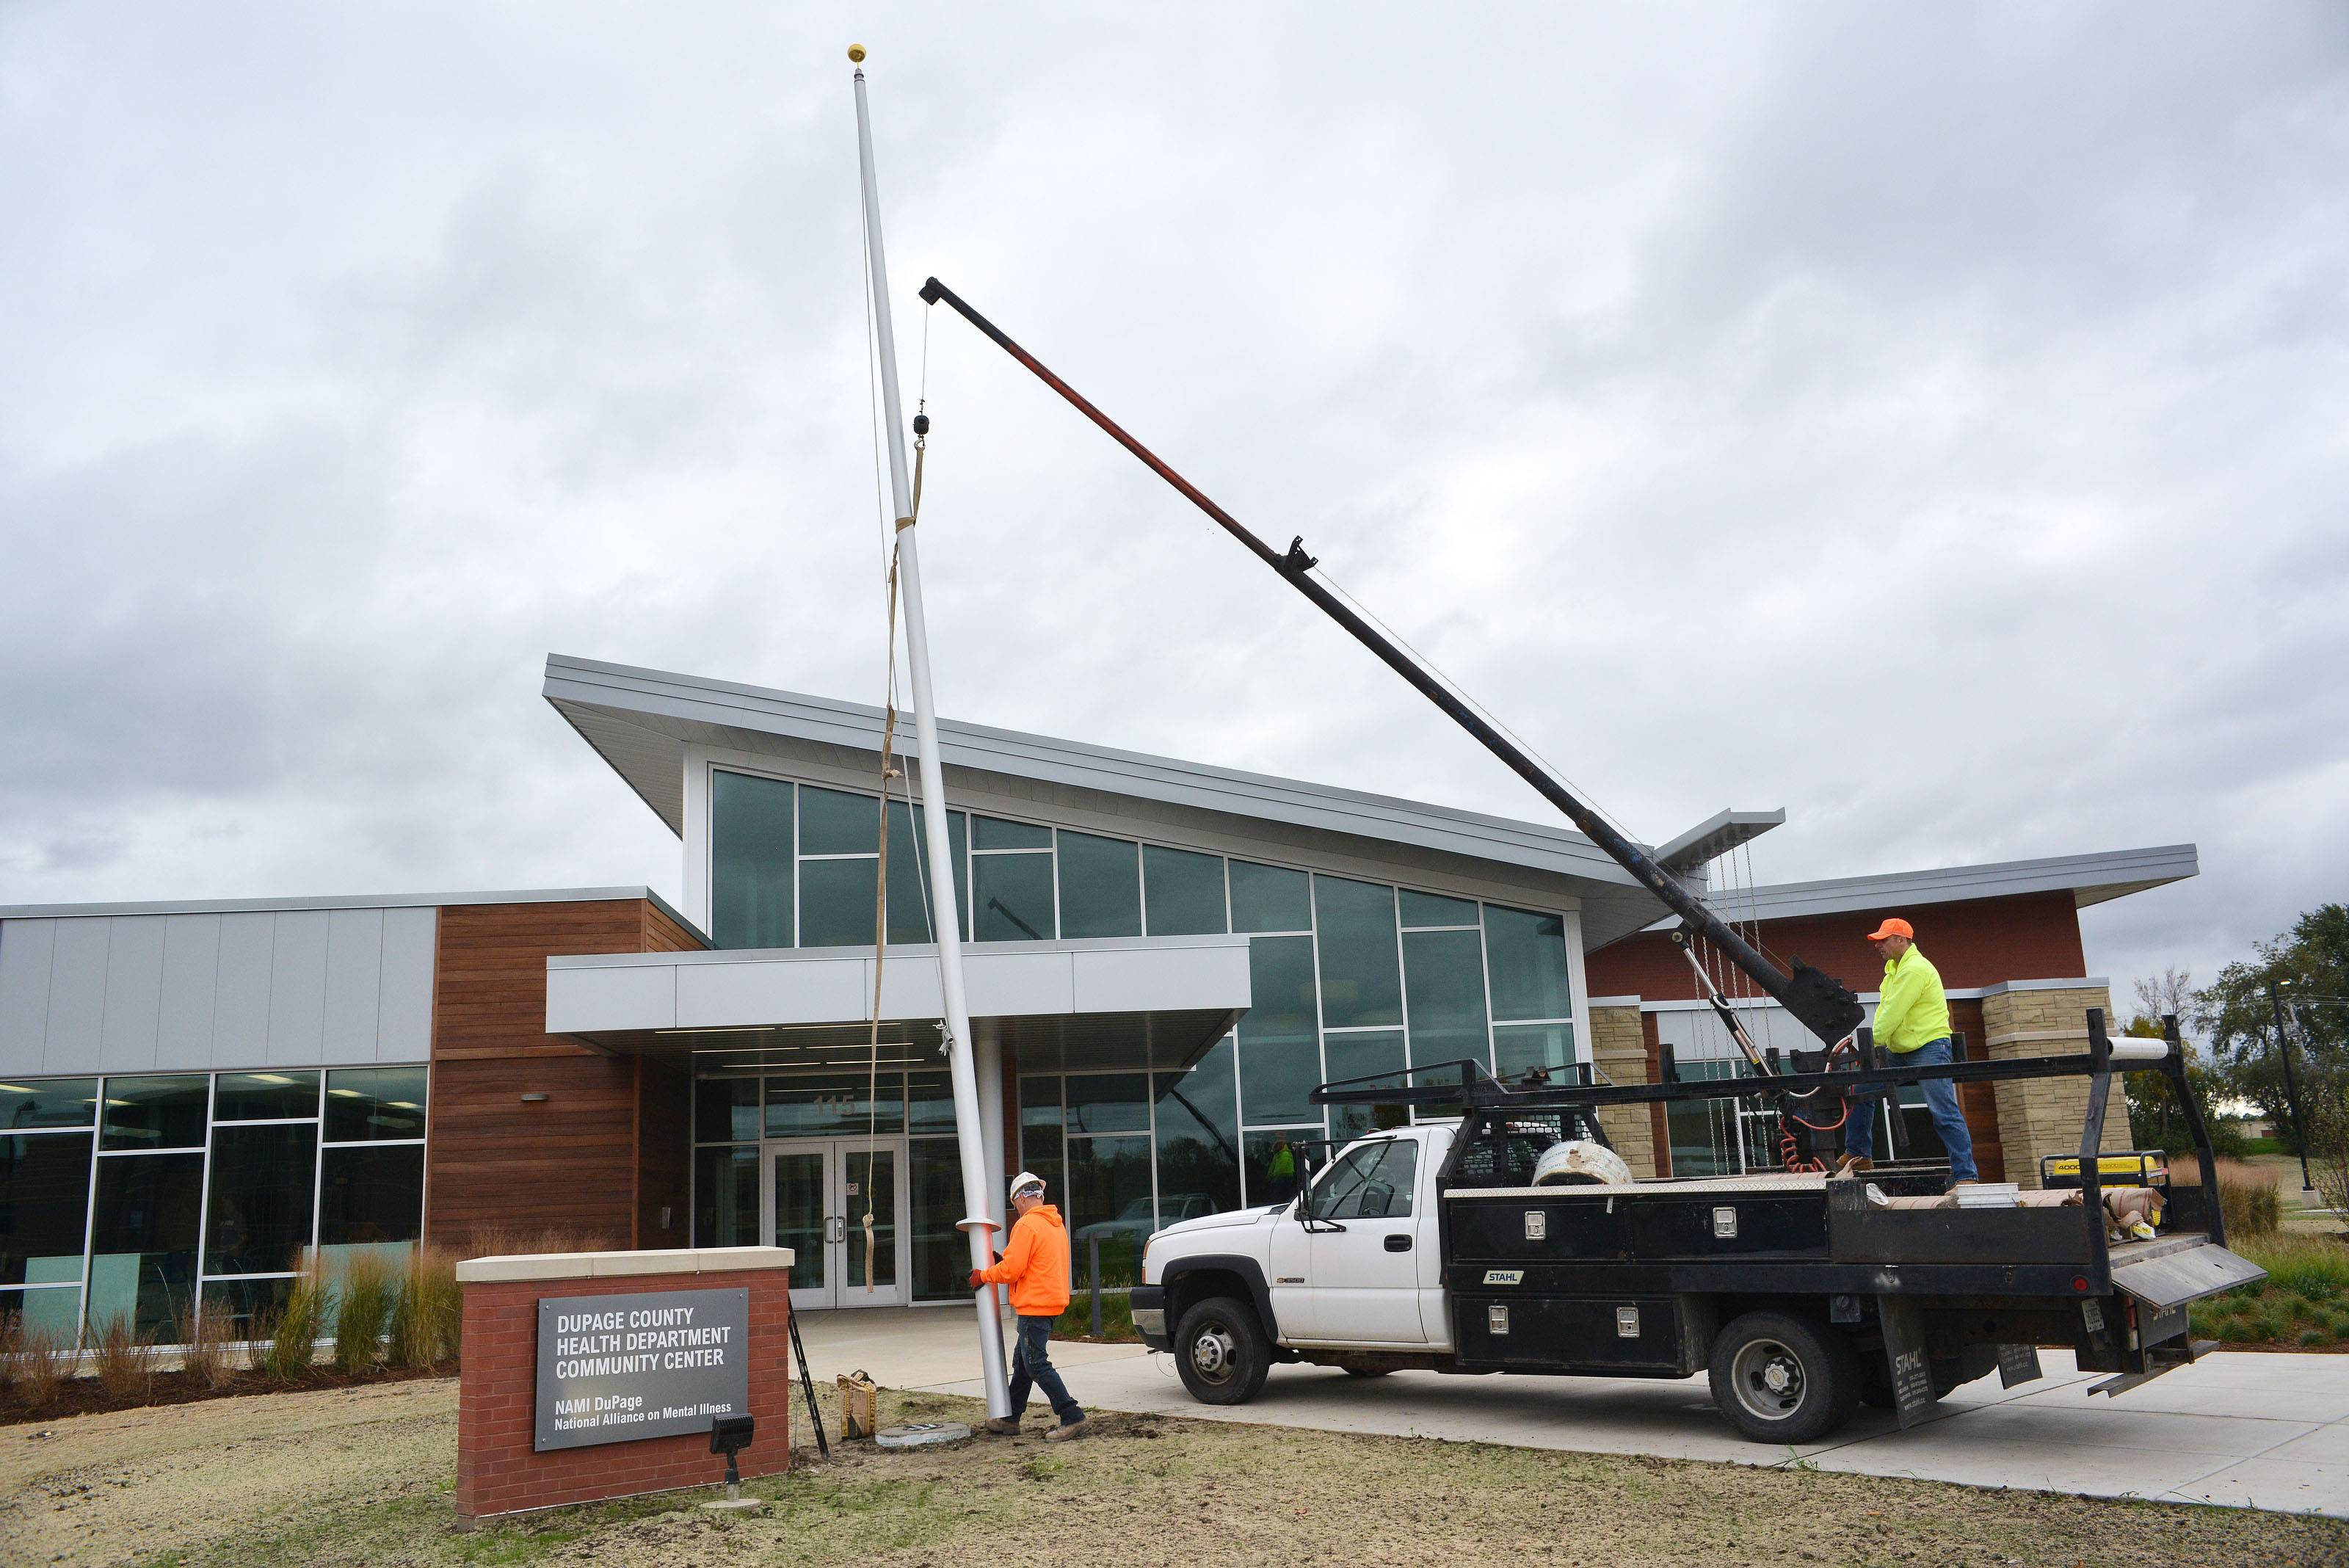 A flagpole was installed Friday outside the DuPage County Health Department's new community health center in Wheaton. The center's grand opening is scheduled for Oct. 15.